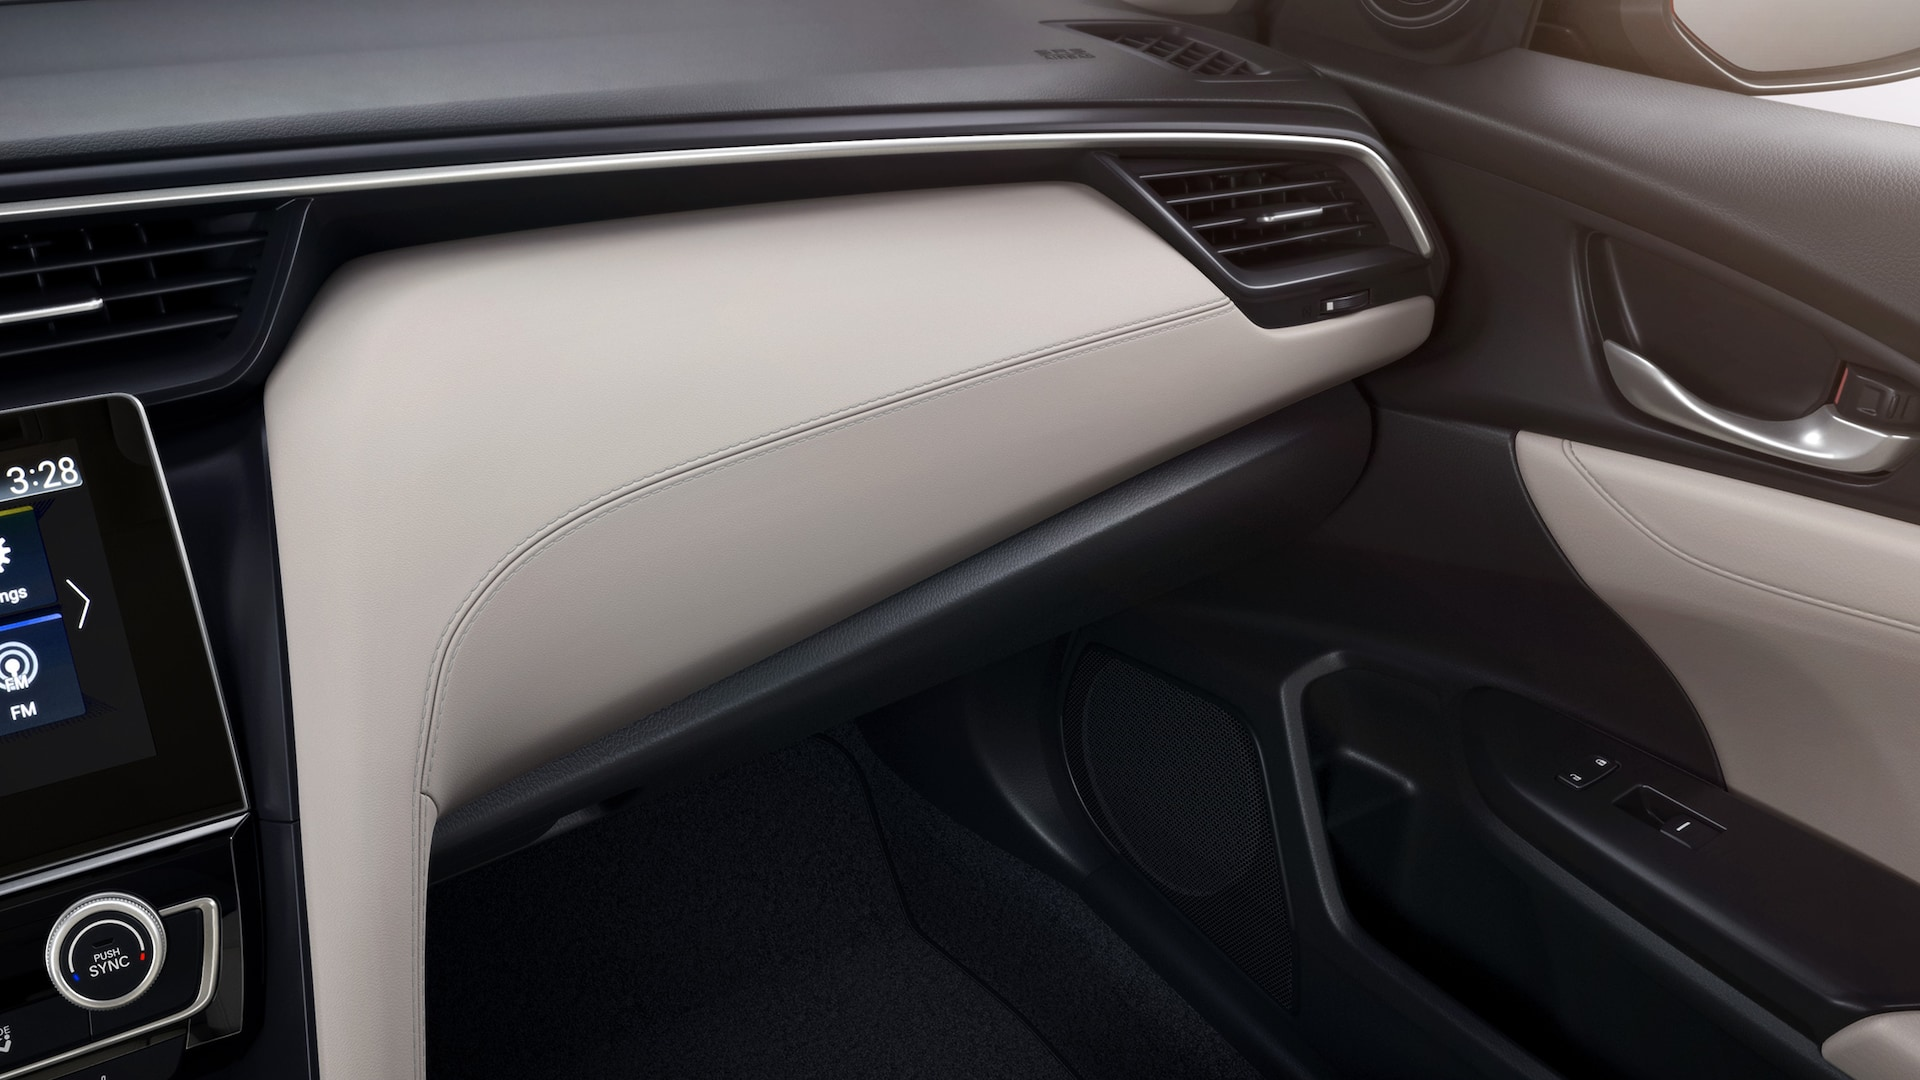 Interior close-up view of dash trim on 2020 Honda Insight Touring with Ivory leather interior.